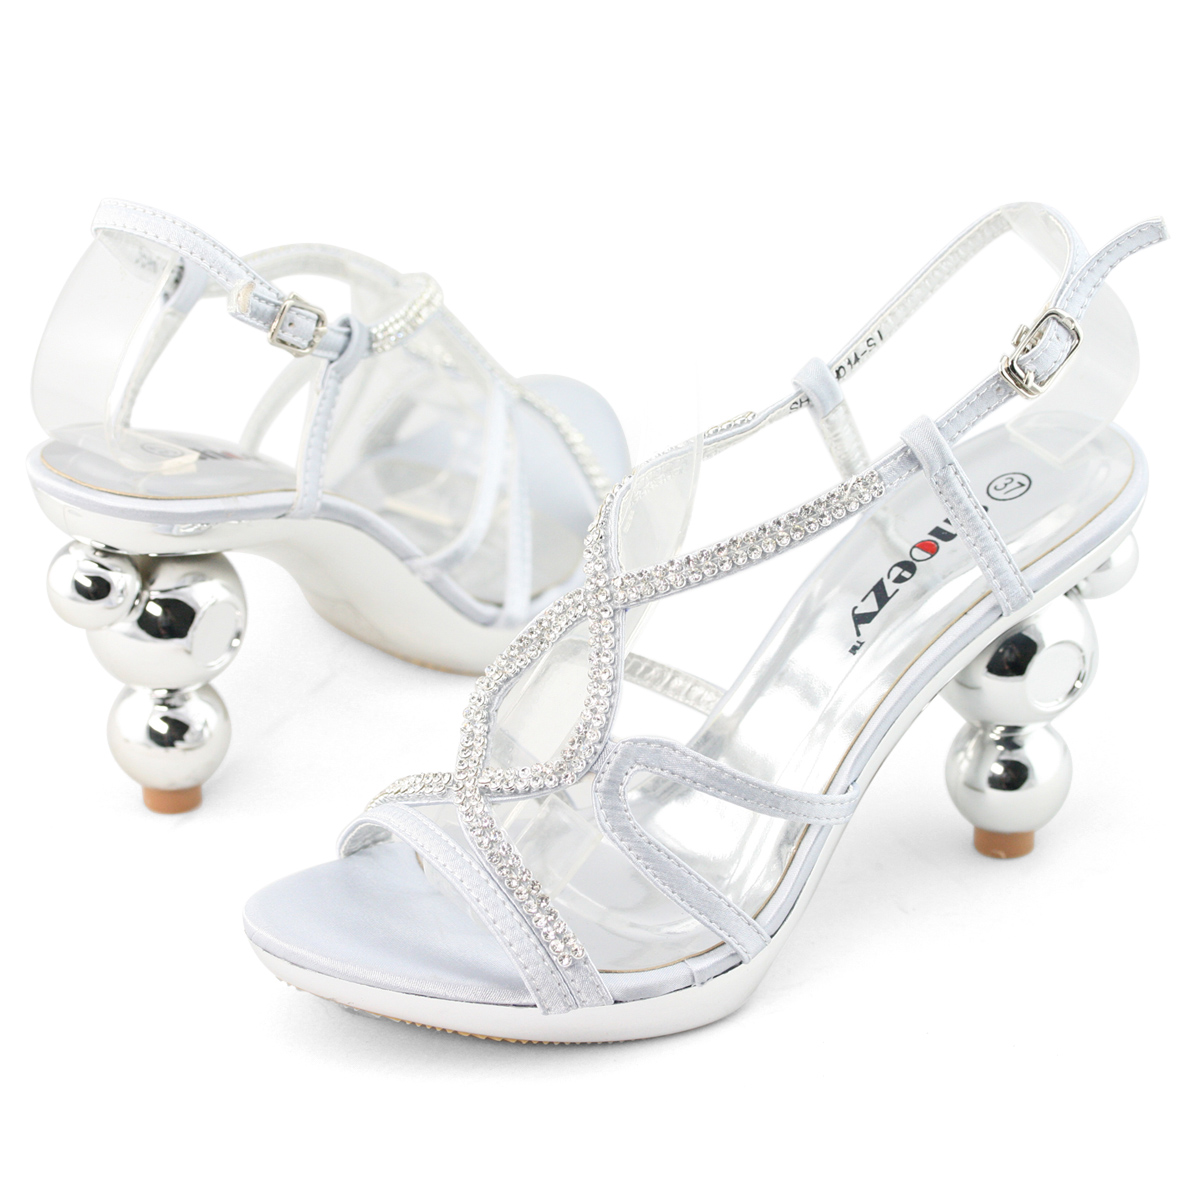 SHOEZY-Cheap-Womens-Silver-Diamond-Platform-Pumps-Block-High-Heels-Sandals-Shoes